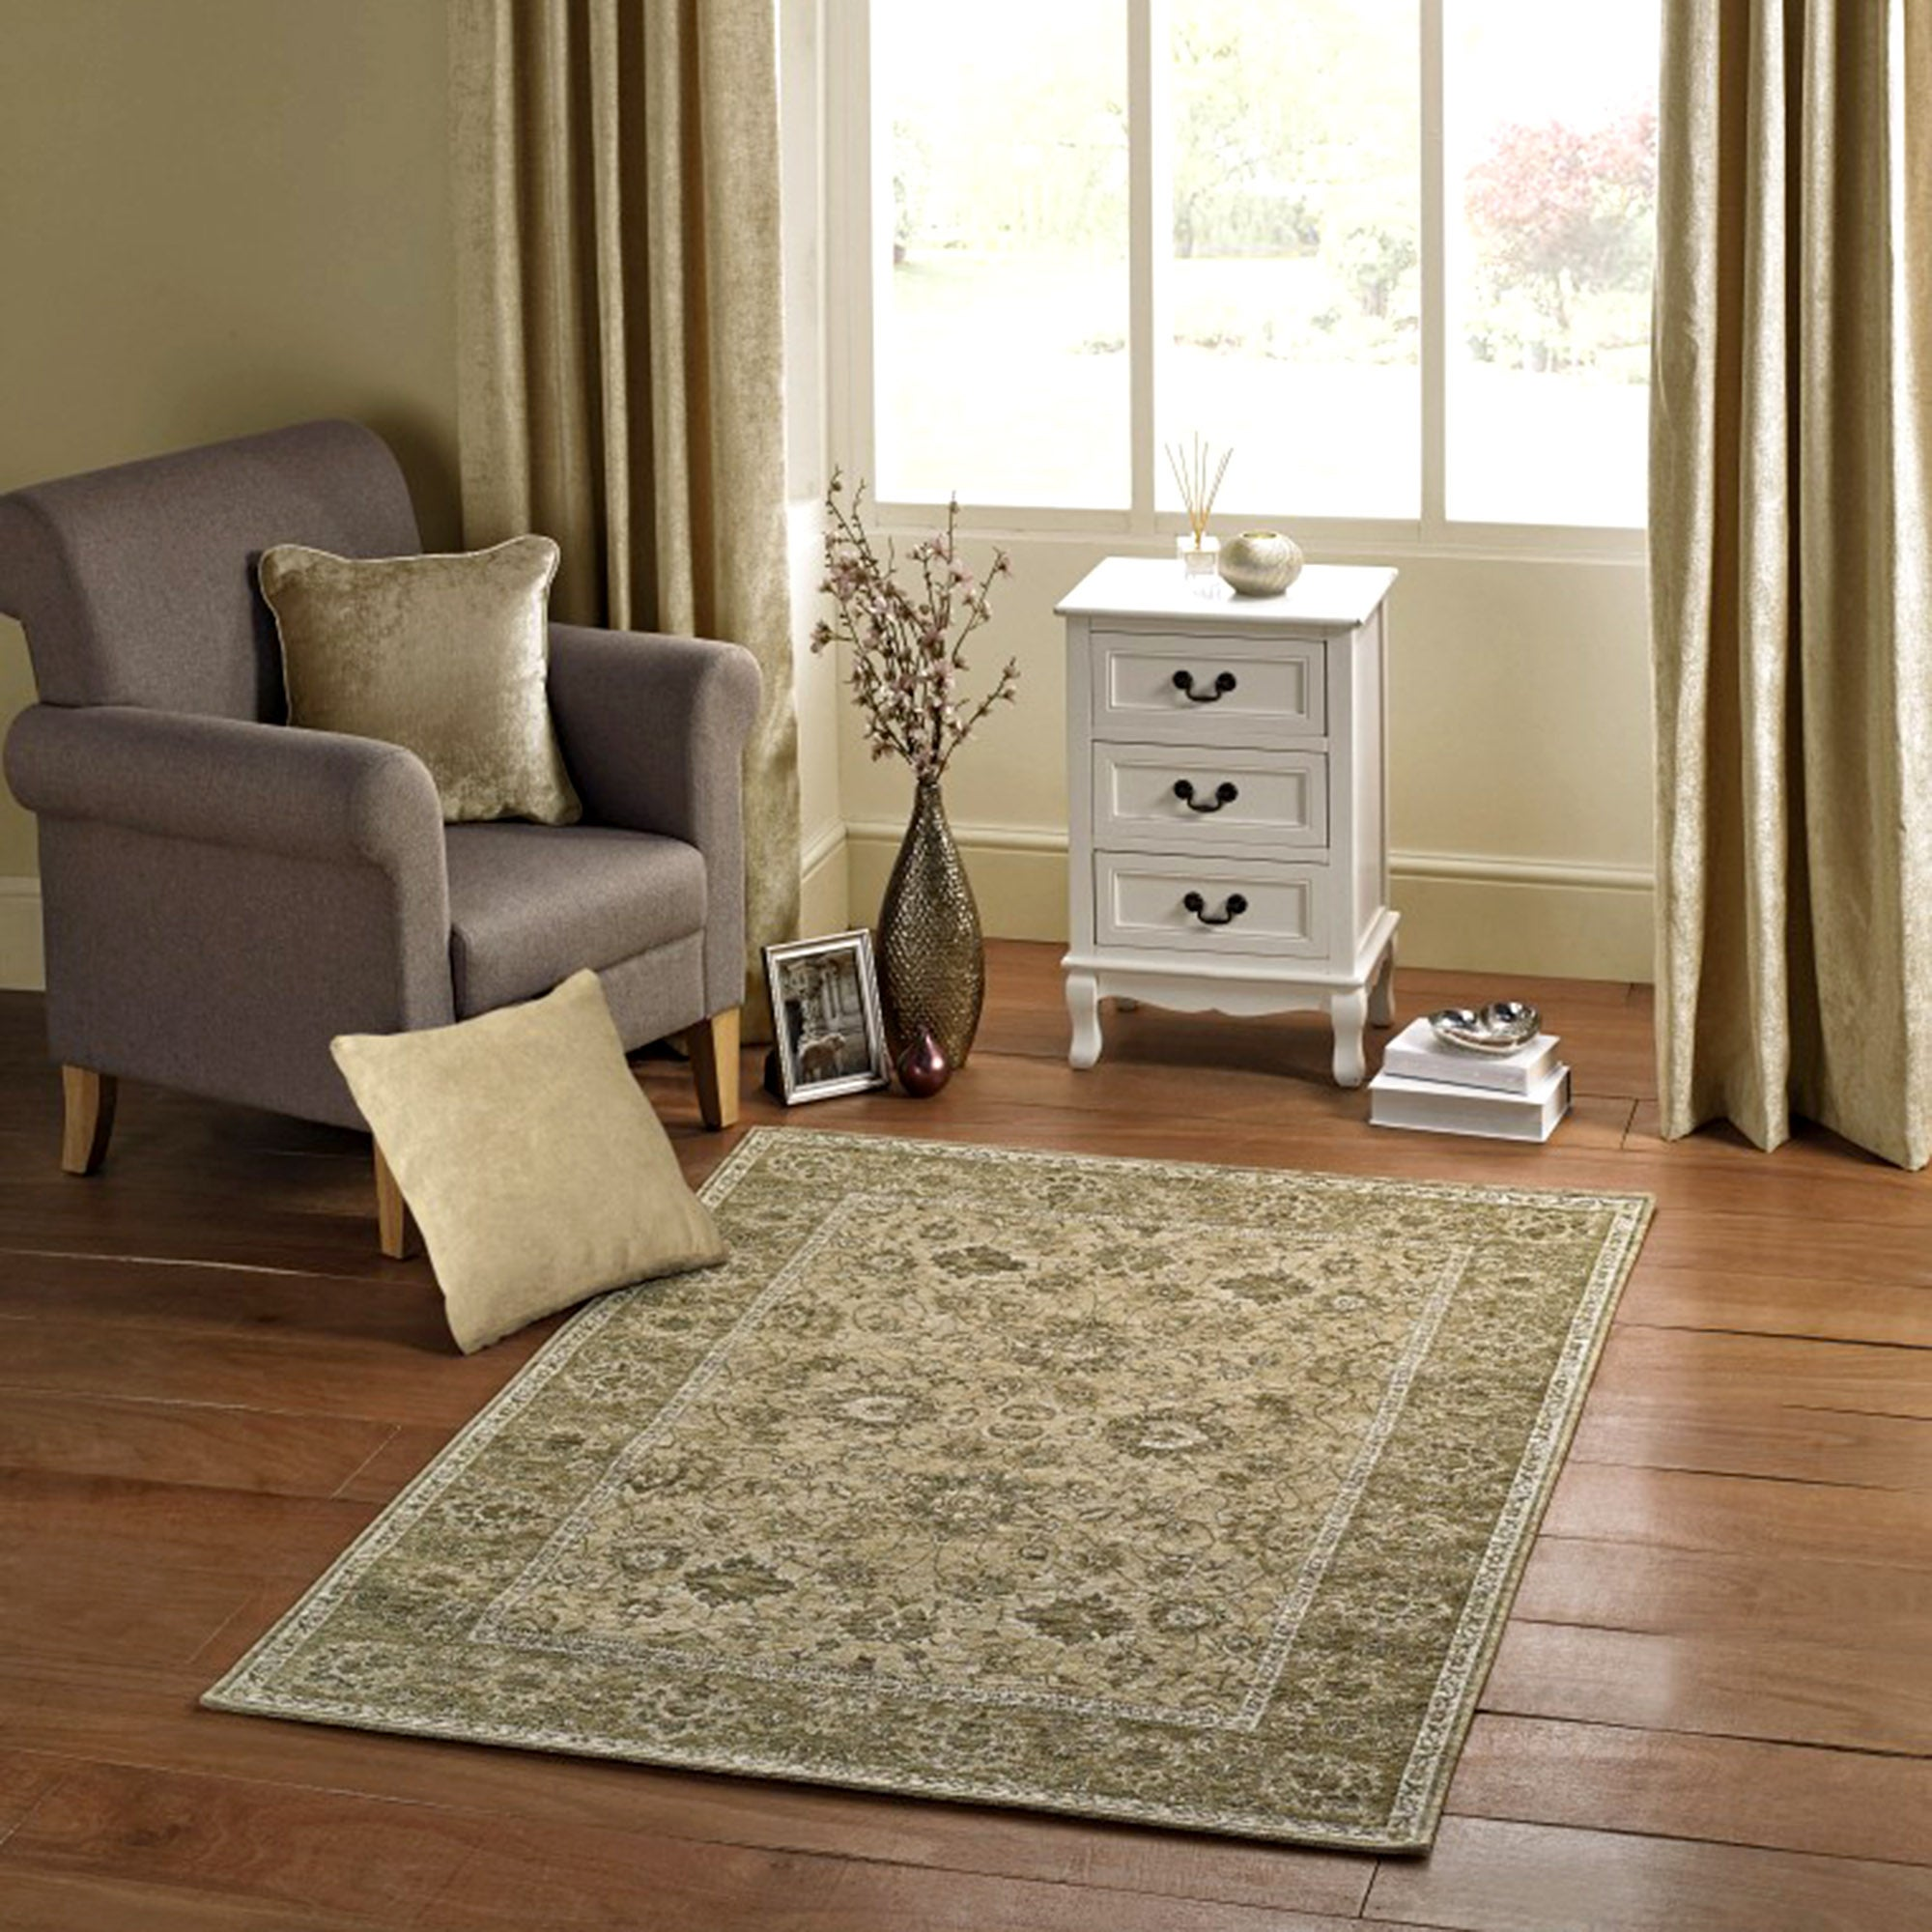 Otisse Rug Collection